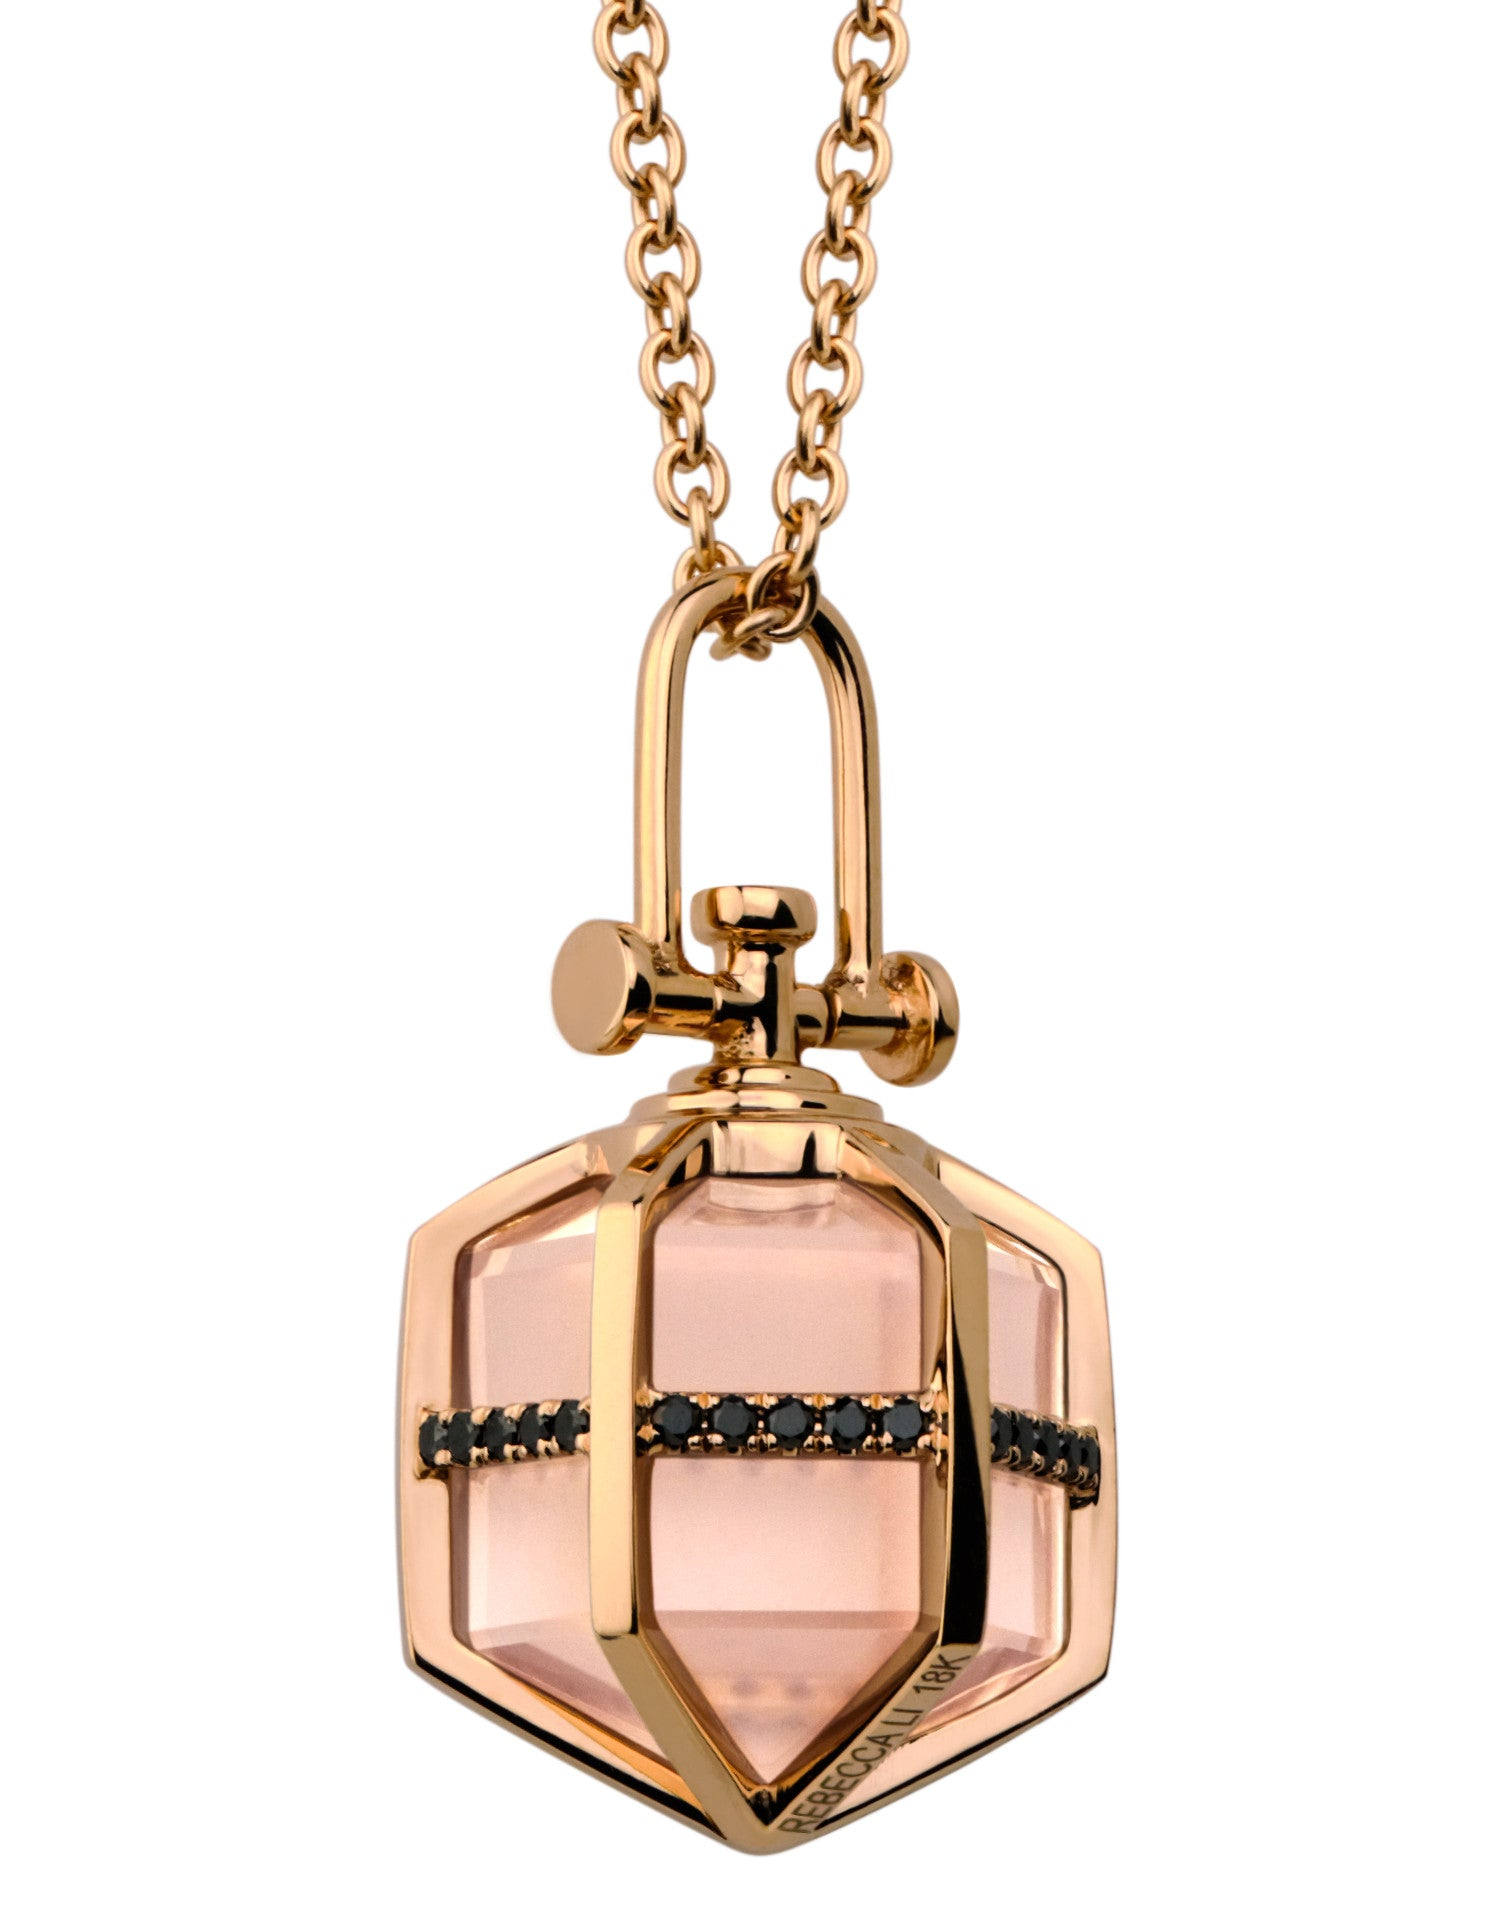 Medium 18k real rose gold pendant with black diamond and rose medium 18k real rose gold necklace and pendant with black diamond and rose quartz healing crystal aloadofball